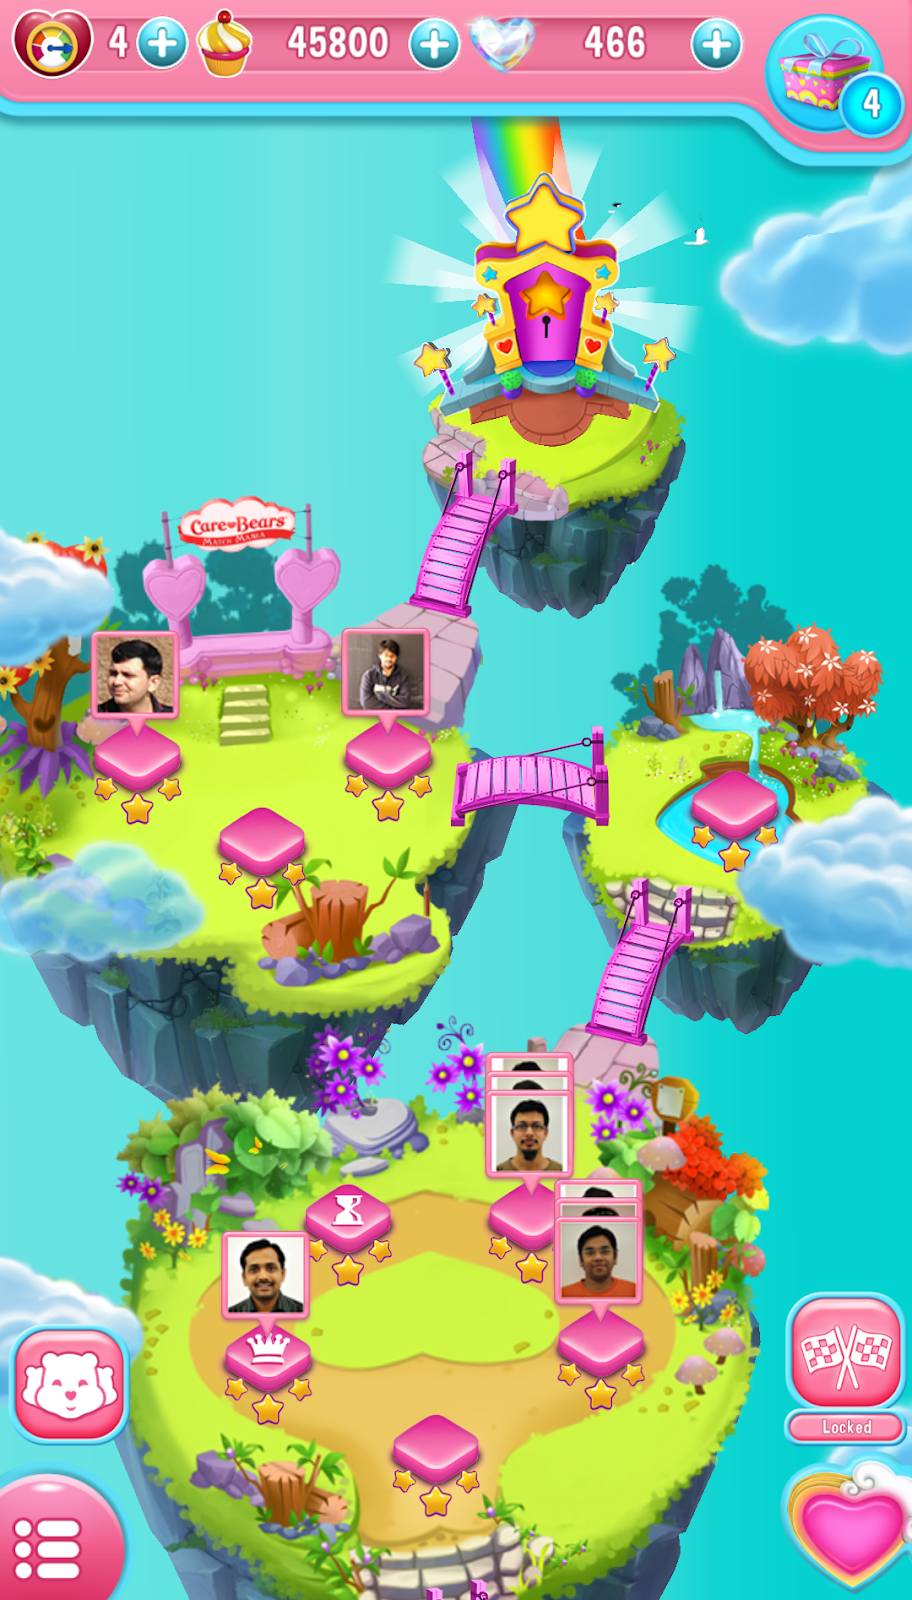 CareBears_BellyMatch_Islands_1445461816.png